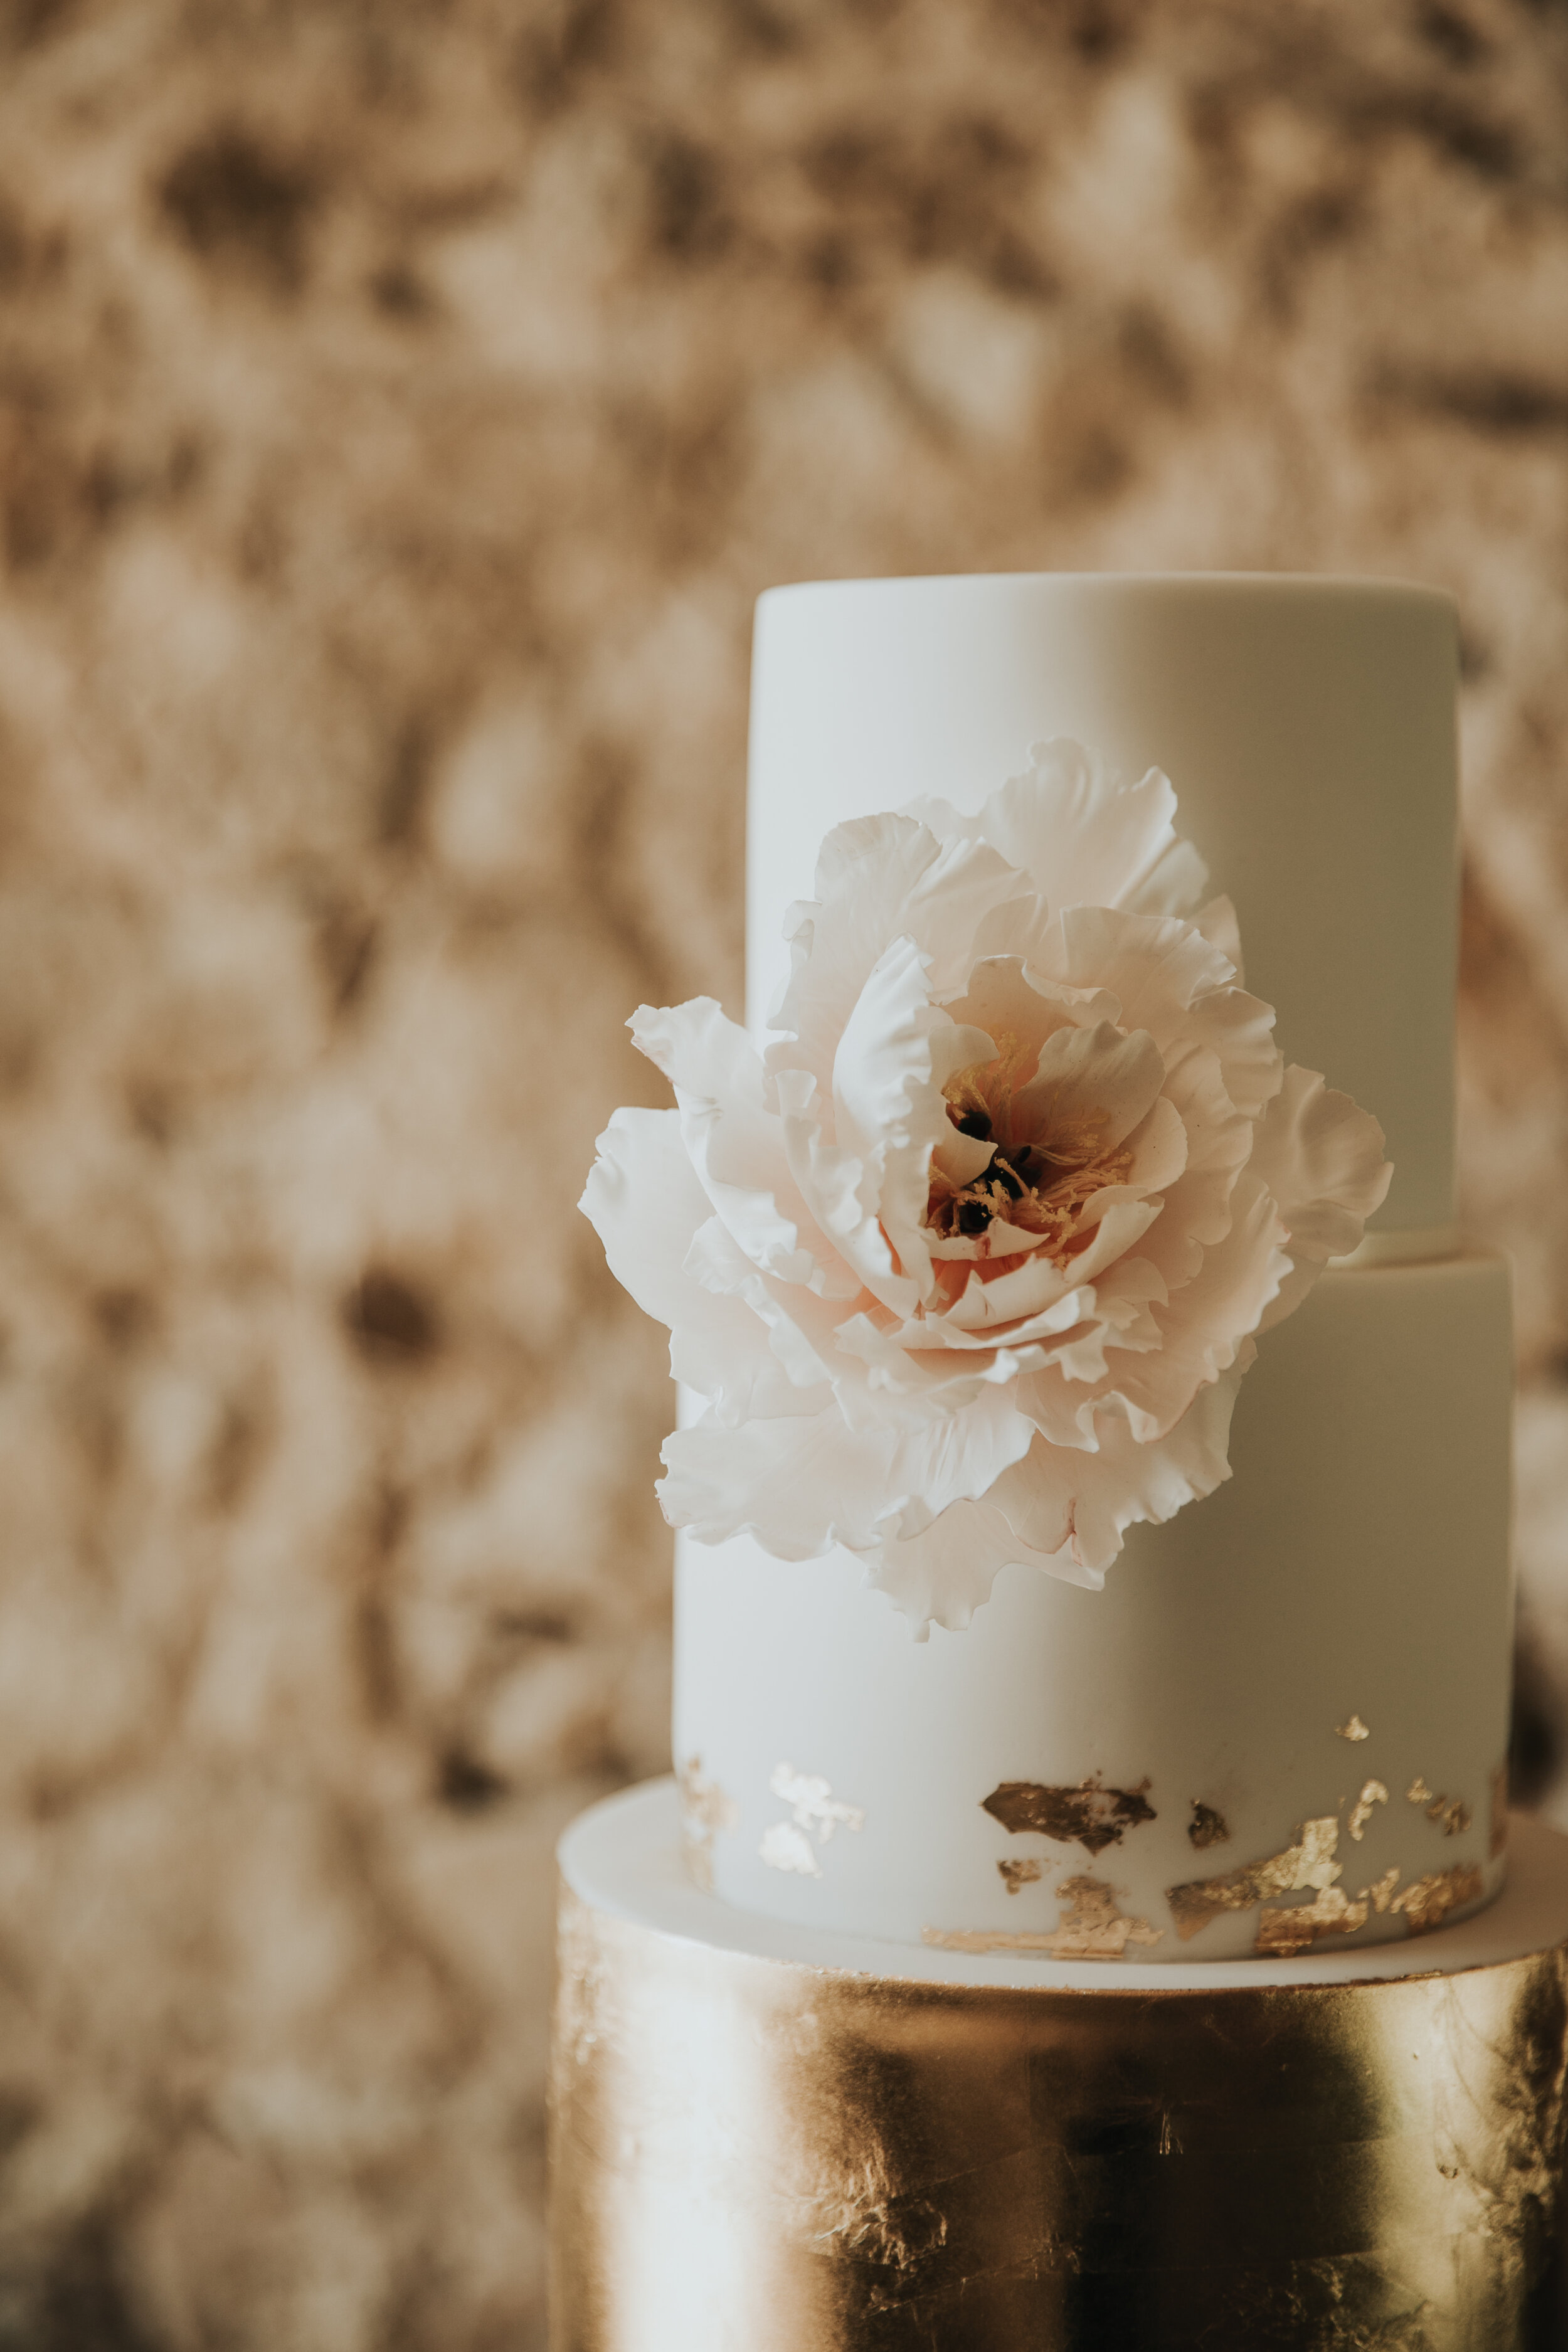 Image used with permission from Natalie J Weddings wedding photography